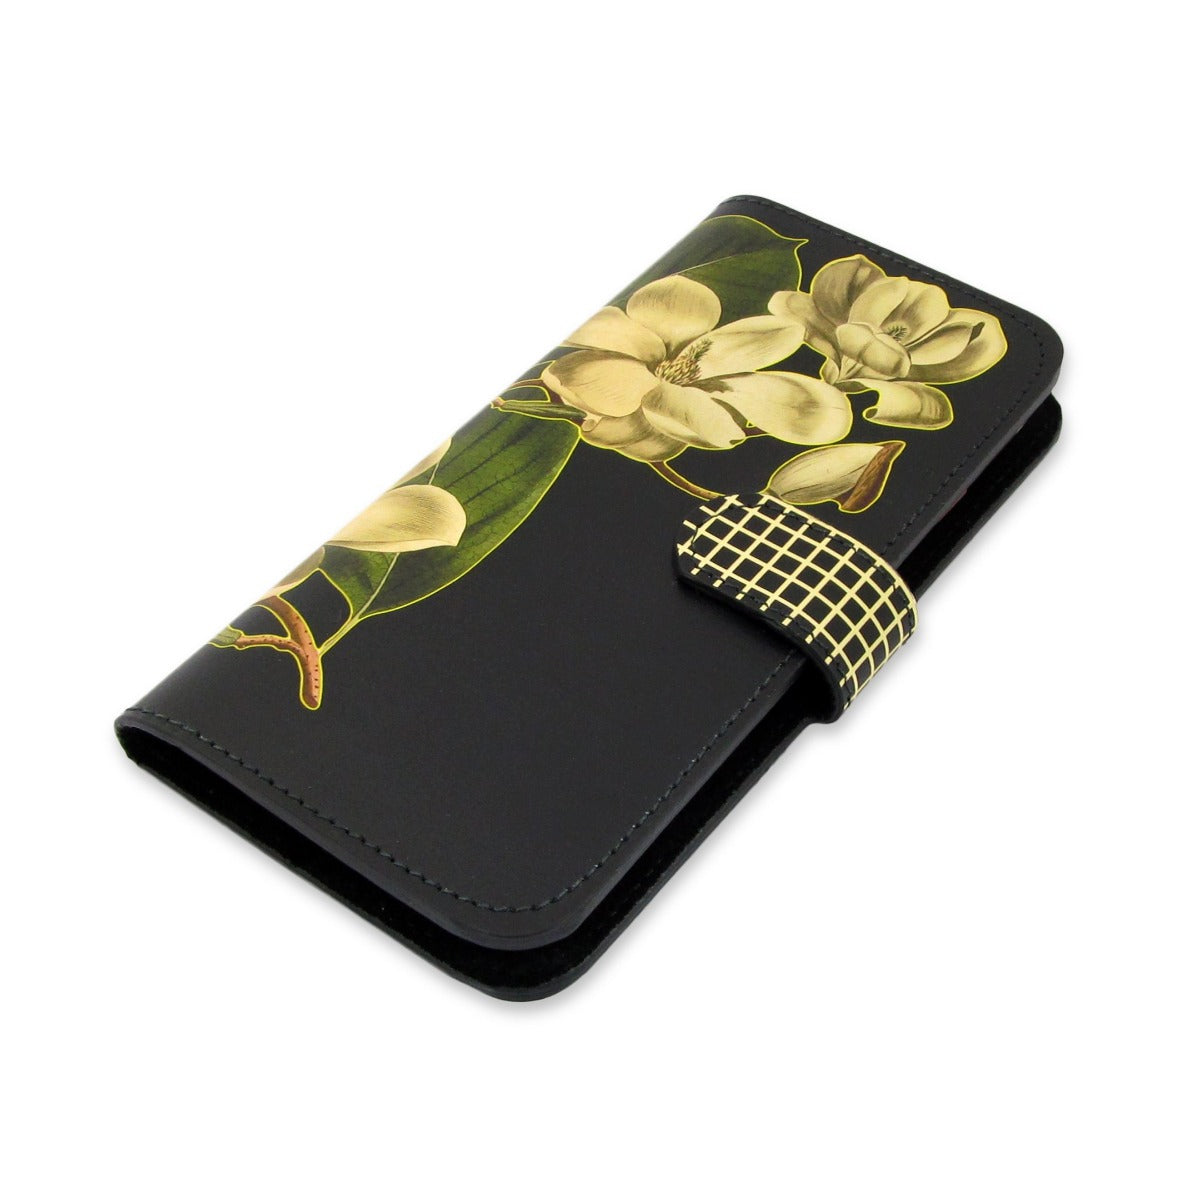 Leather case iphone 11 - iphone xr folio - xs iphone cover -  iphone x wallet  -  Black Magnolia Phone case - magnet clasp -